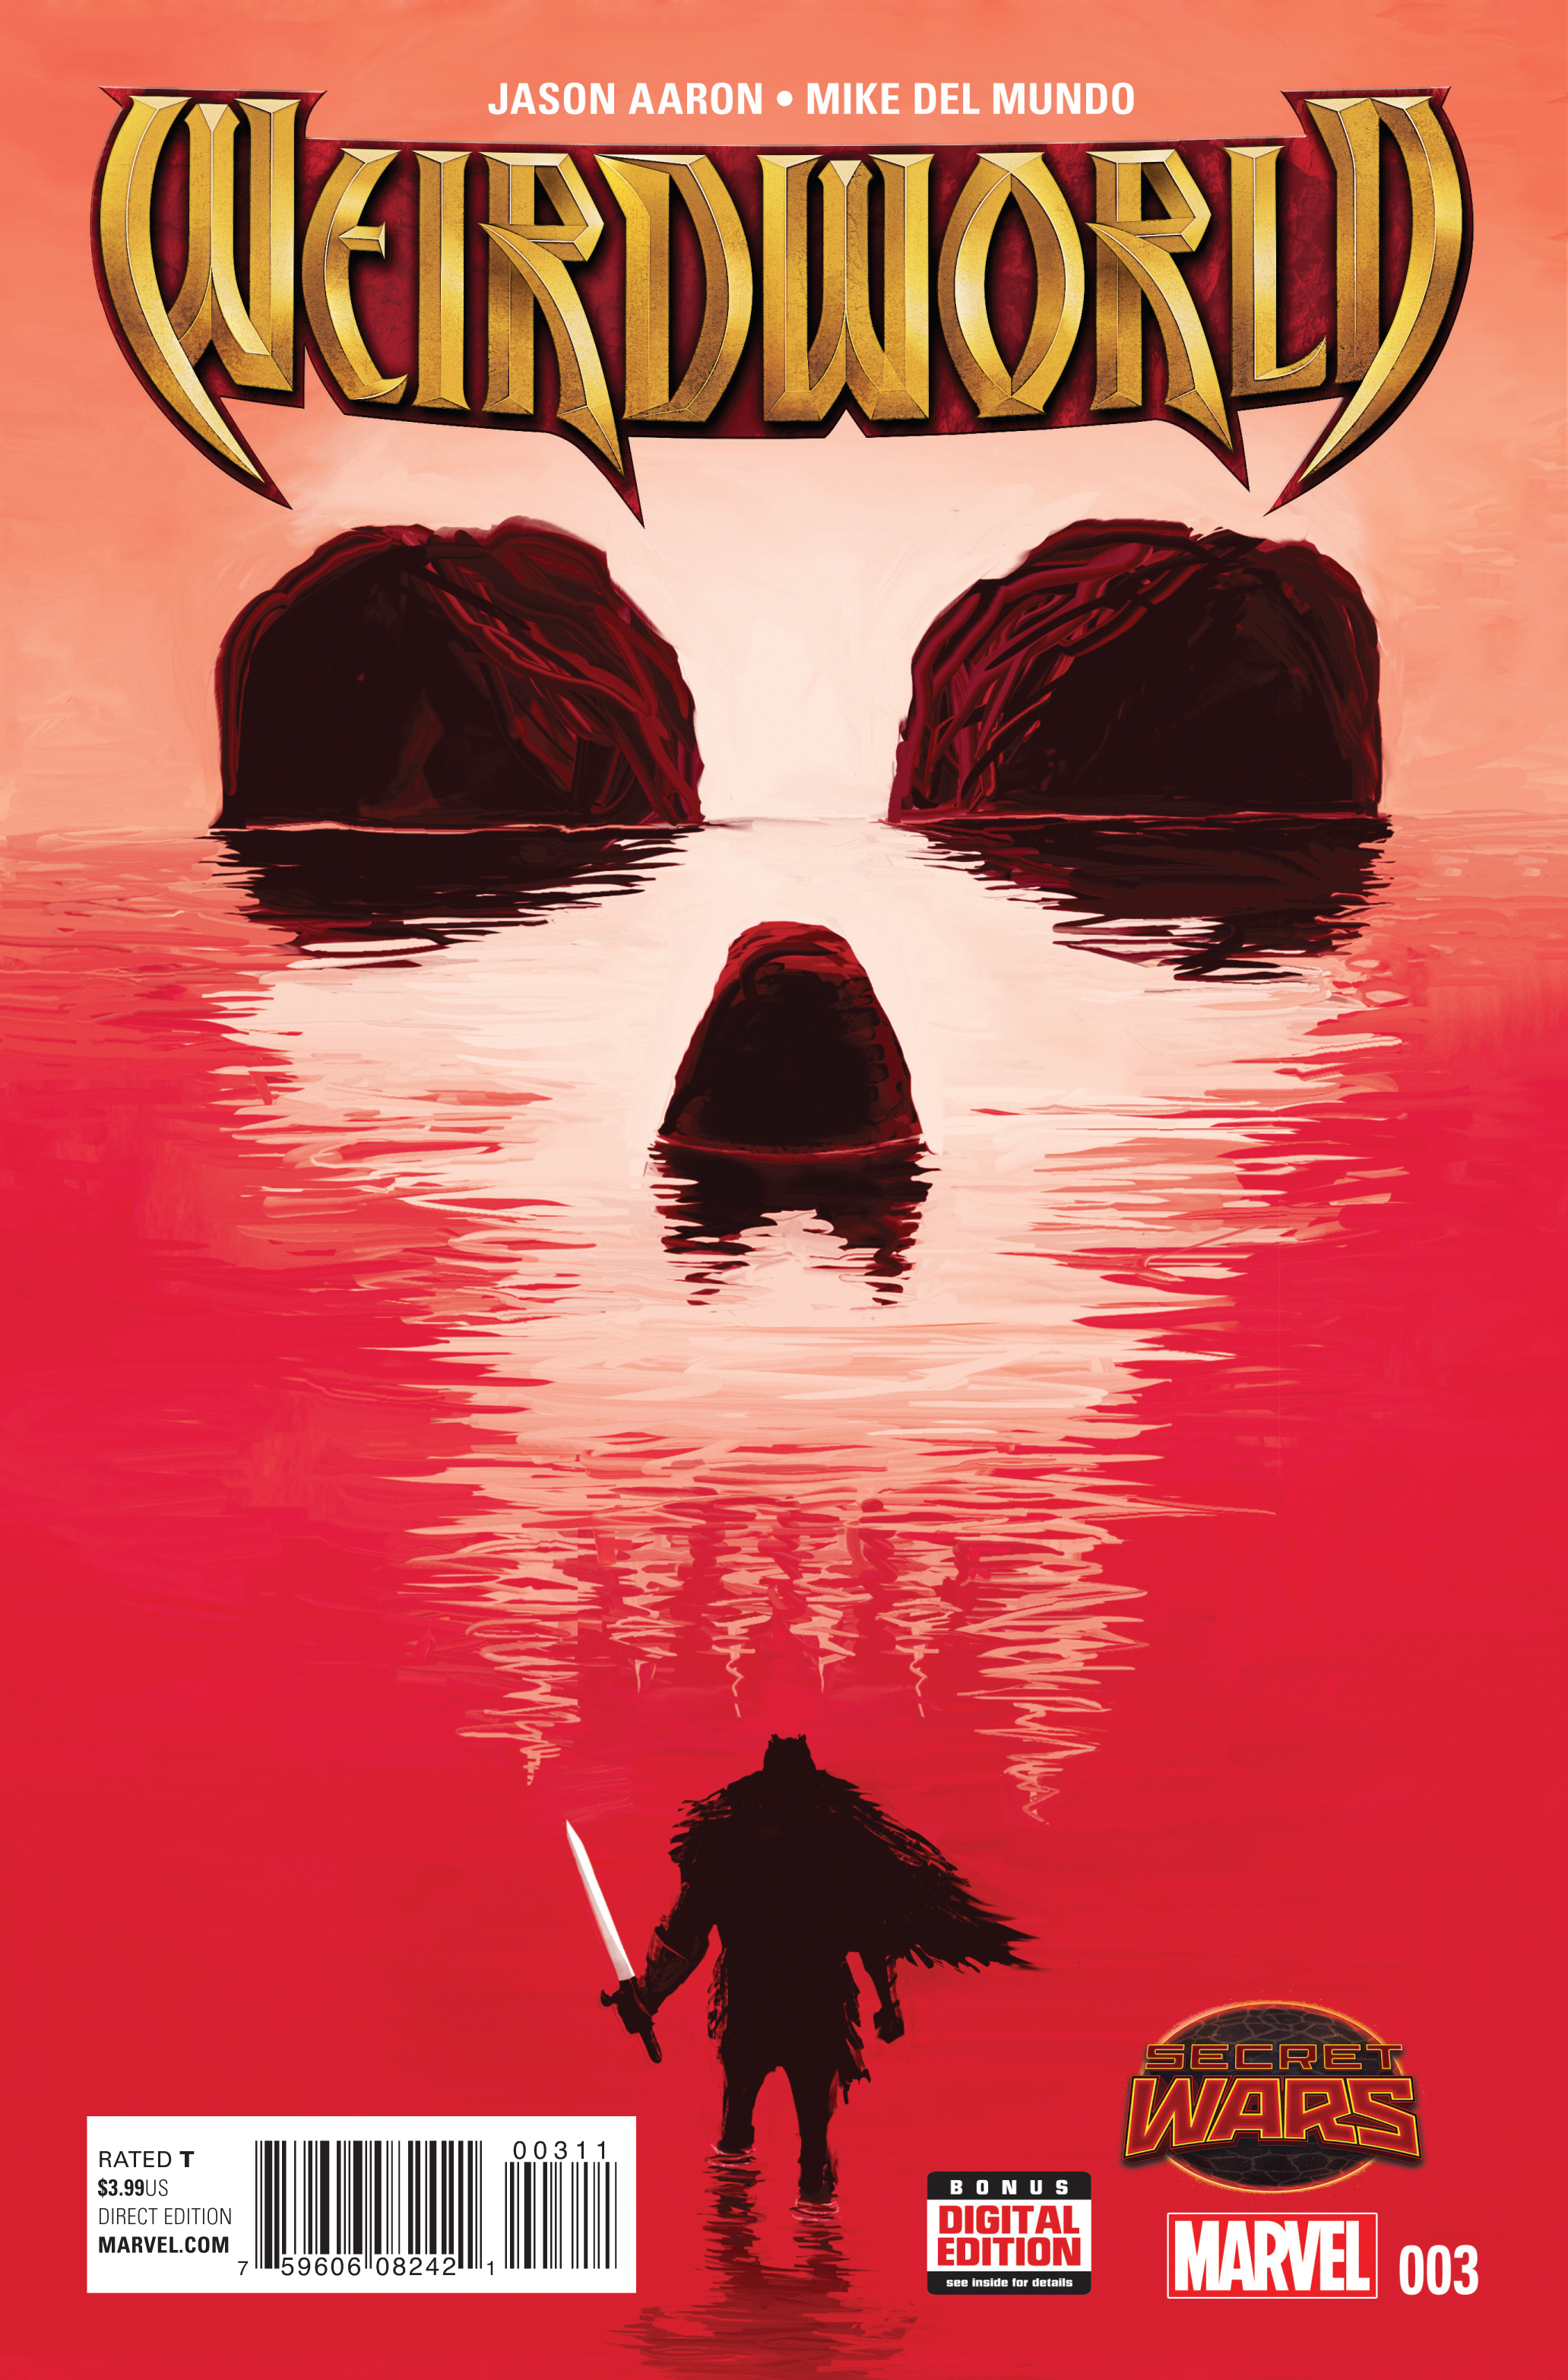 WEIRDWORLD #3 SWA